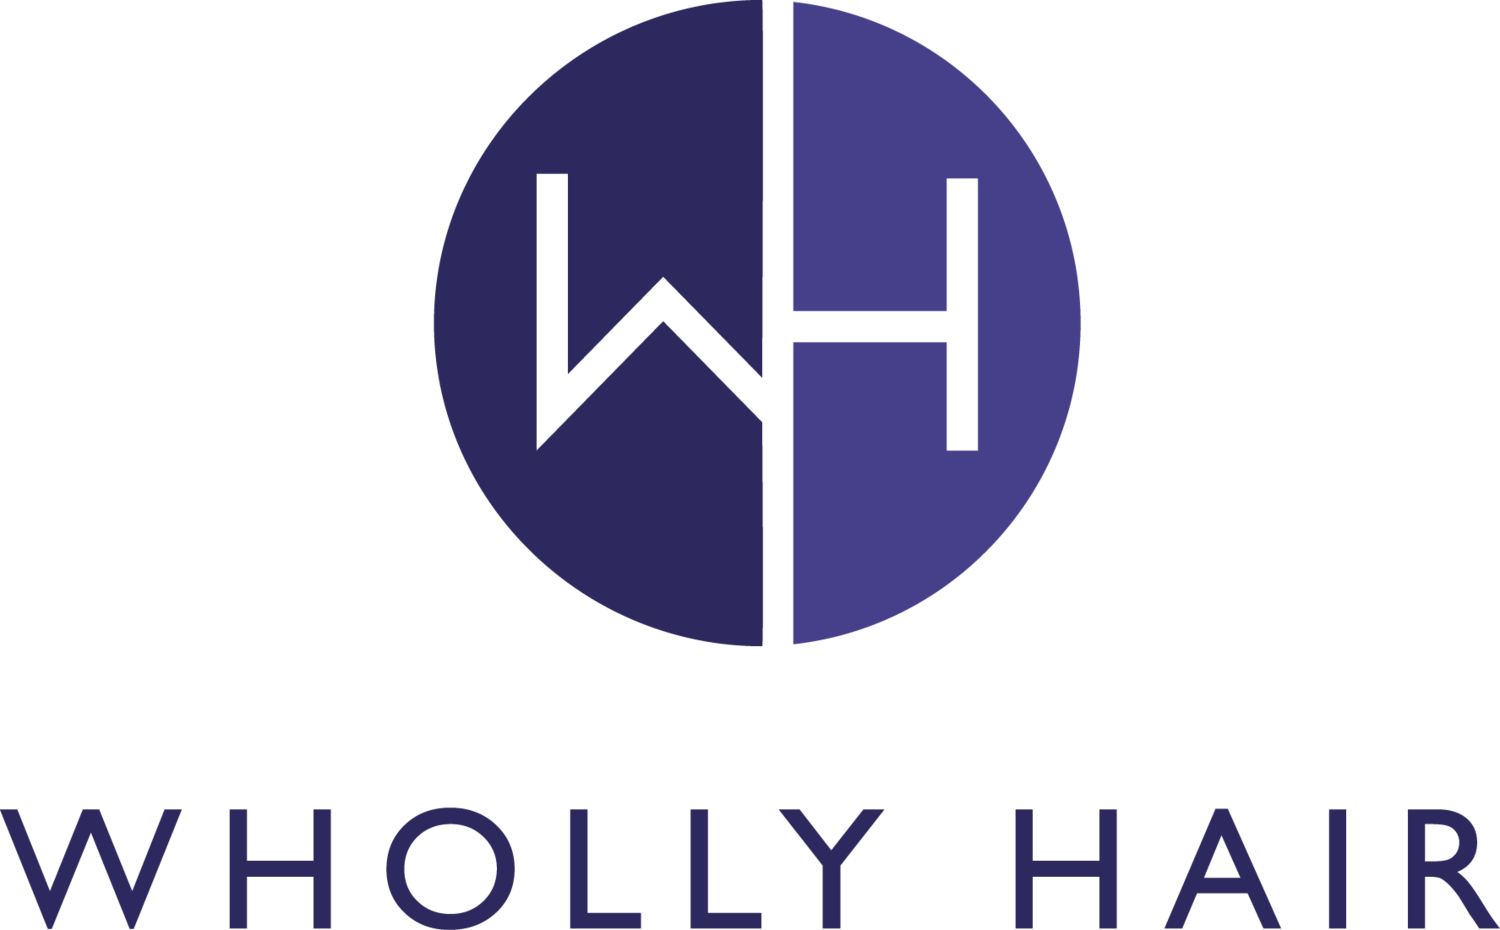 WHOLLY|HAIR